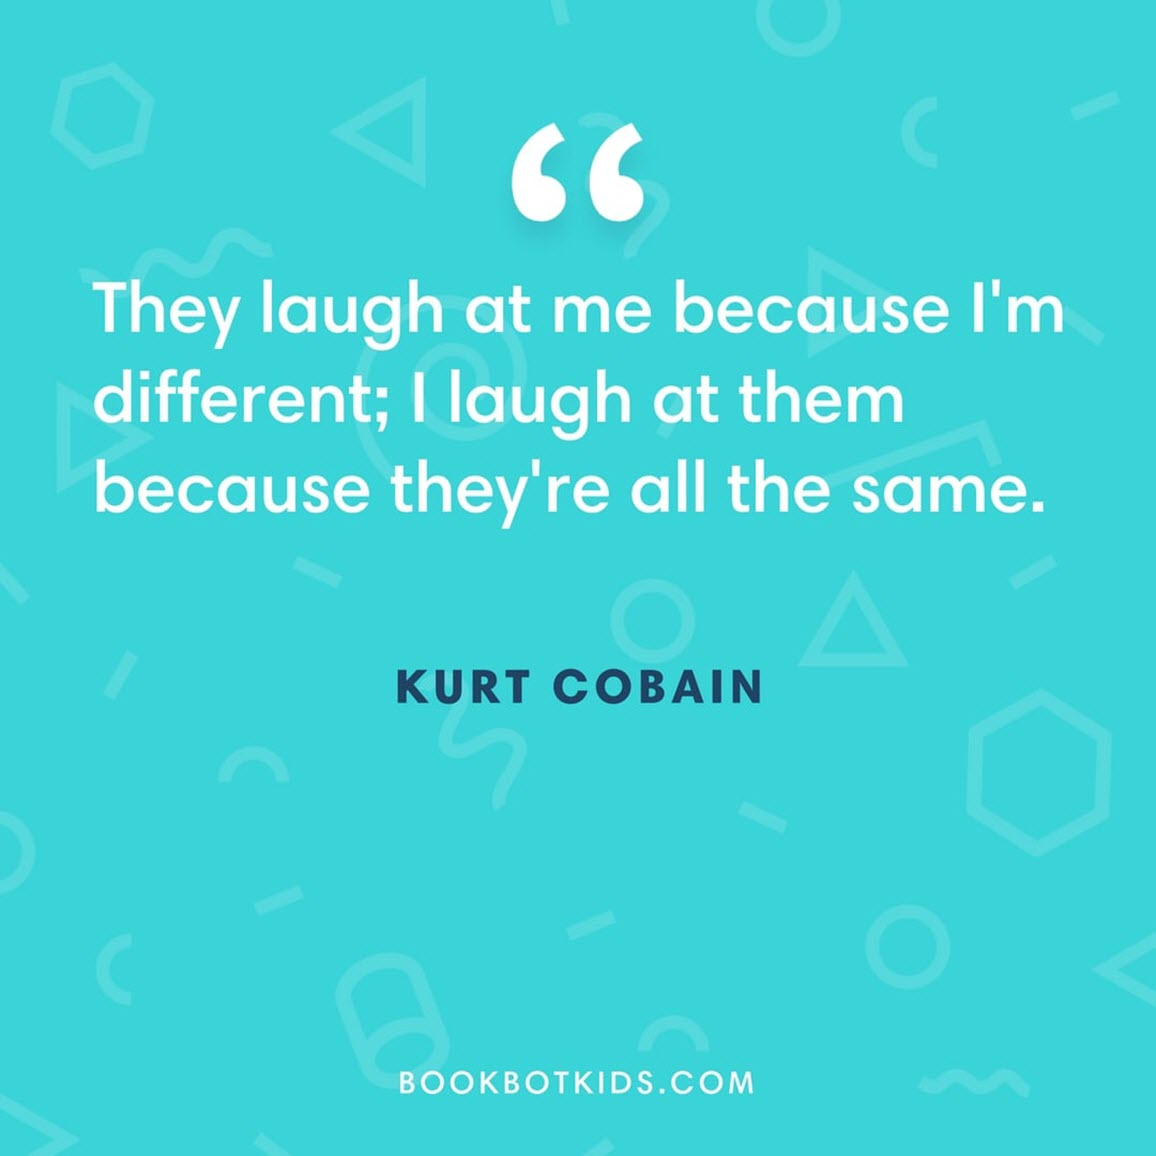 They laugh at me because I'm different; I laugh at them because they're all the same. – Kurt Cobain